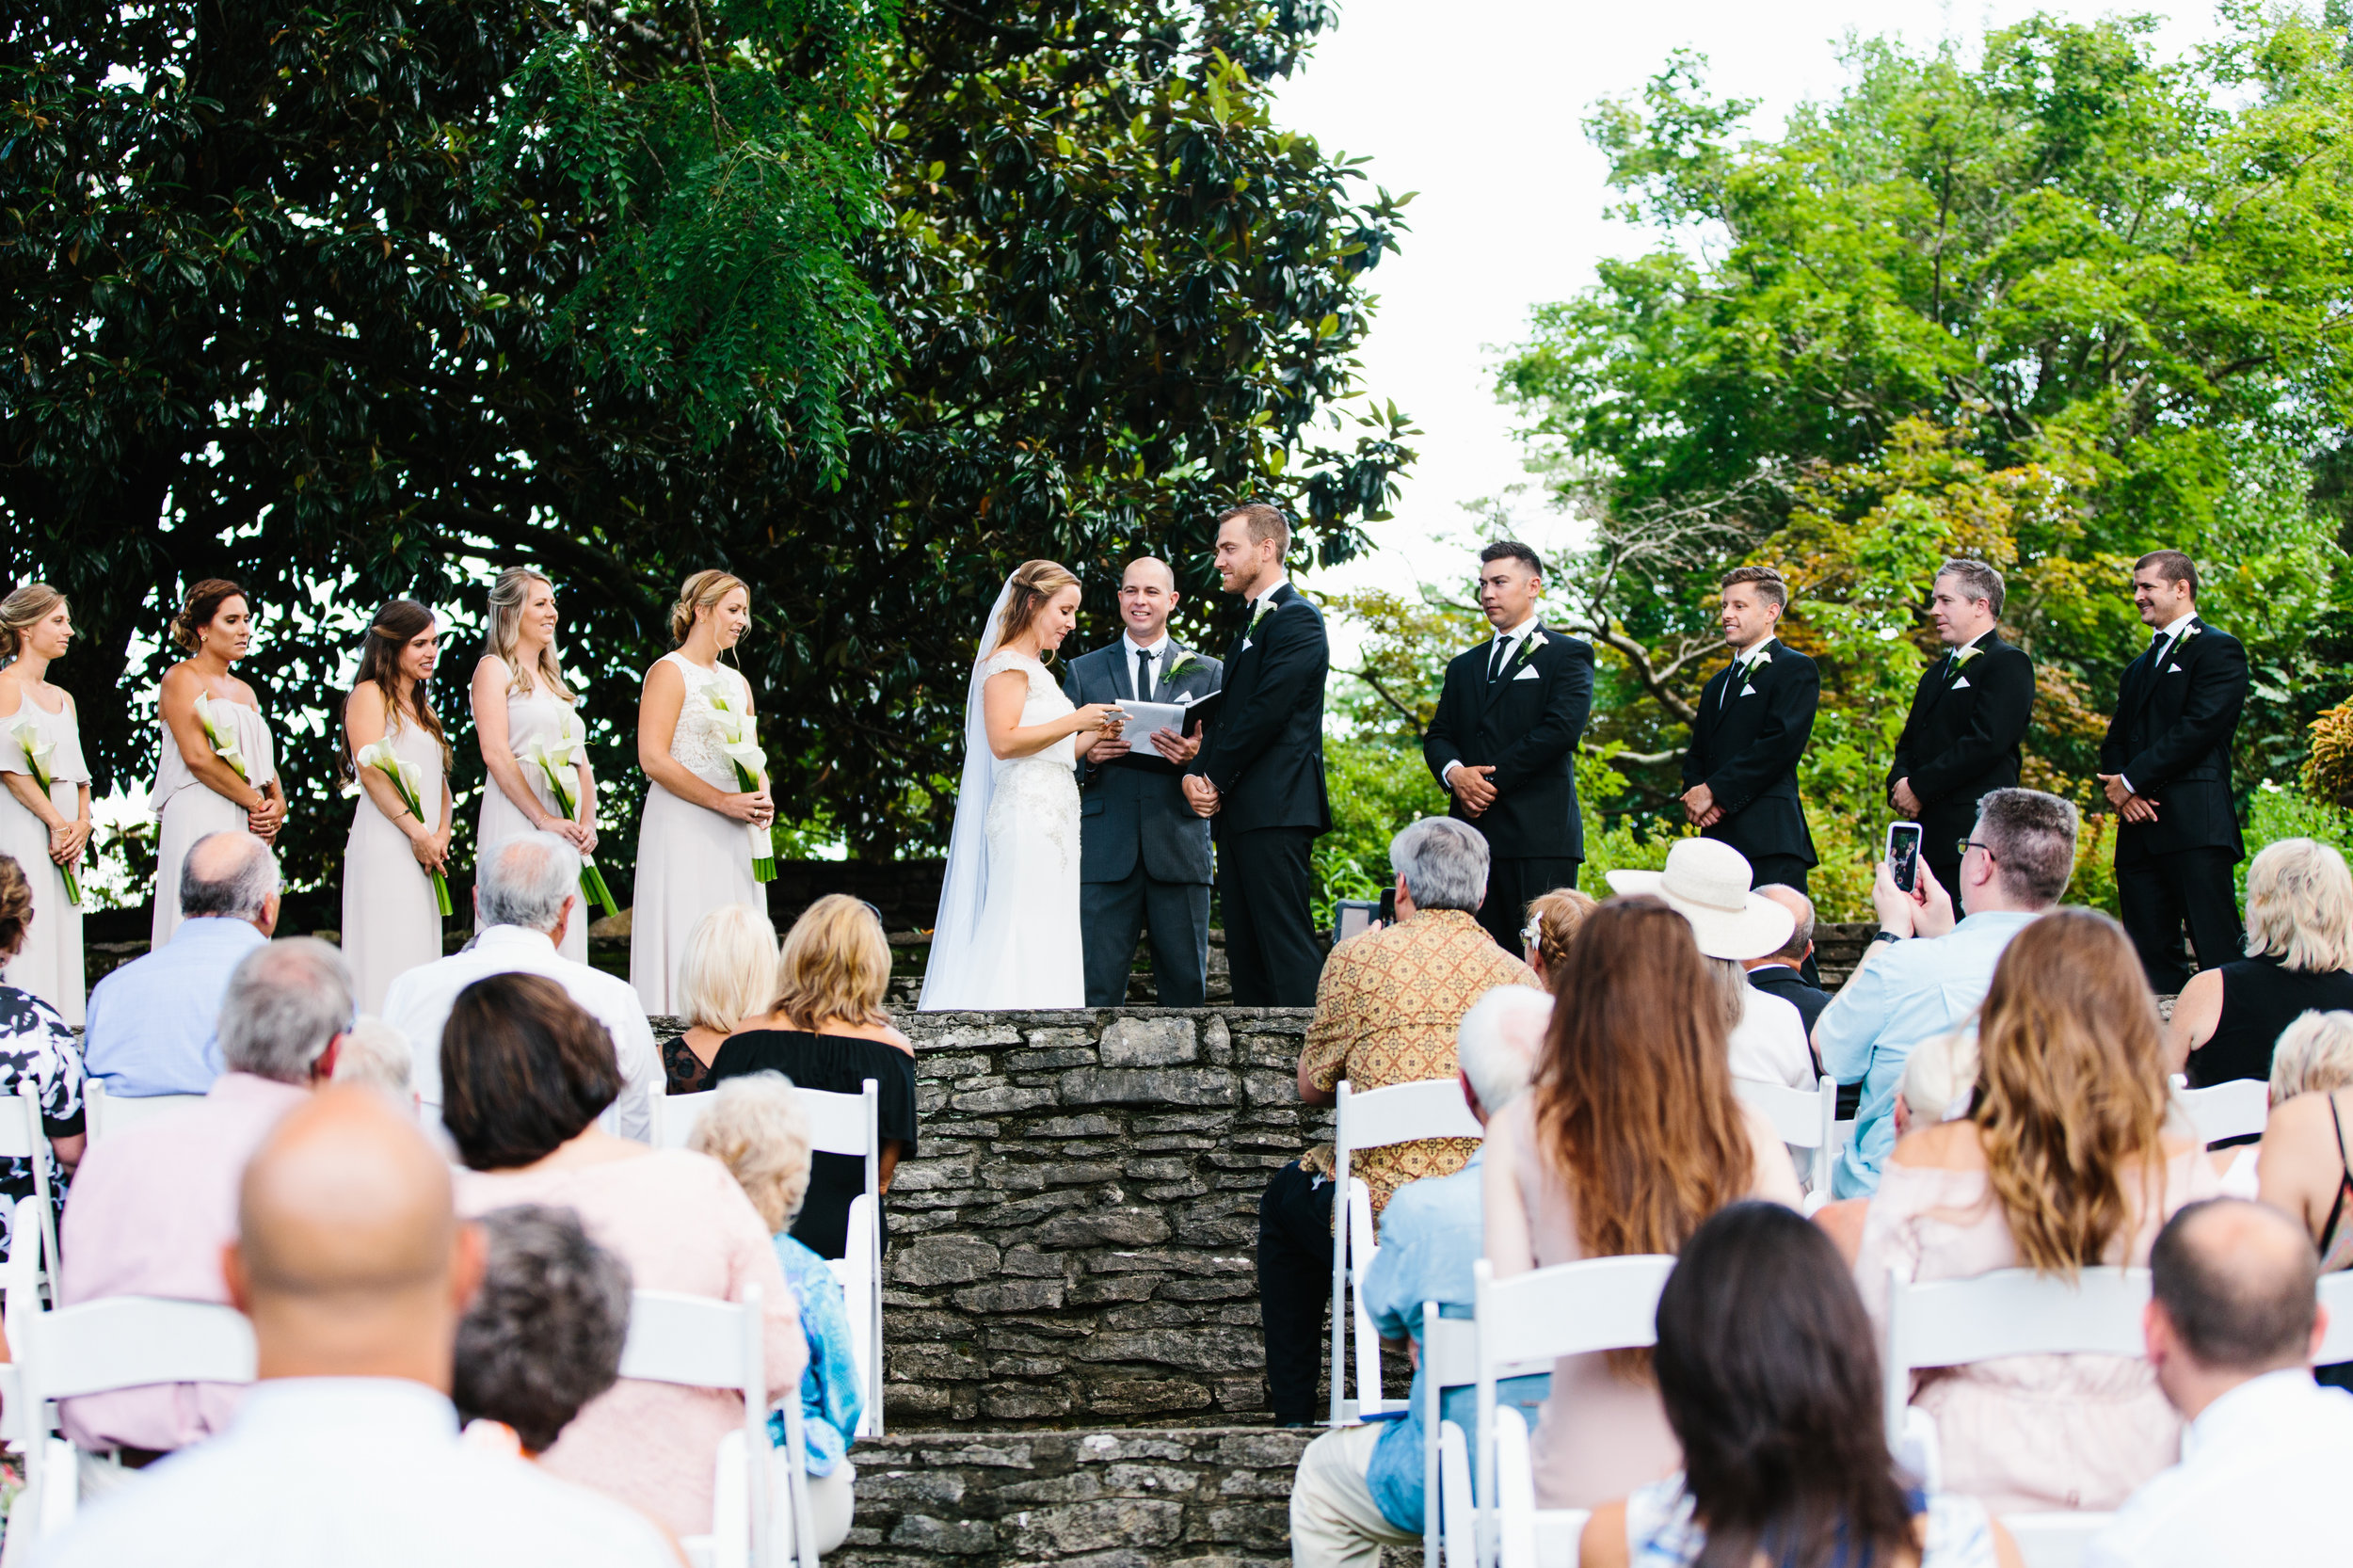 Katie_Matt_Wedding_Knoxville_Botanical_Garden_Abigail_Malone_photography-258.jpg